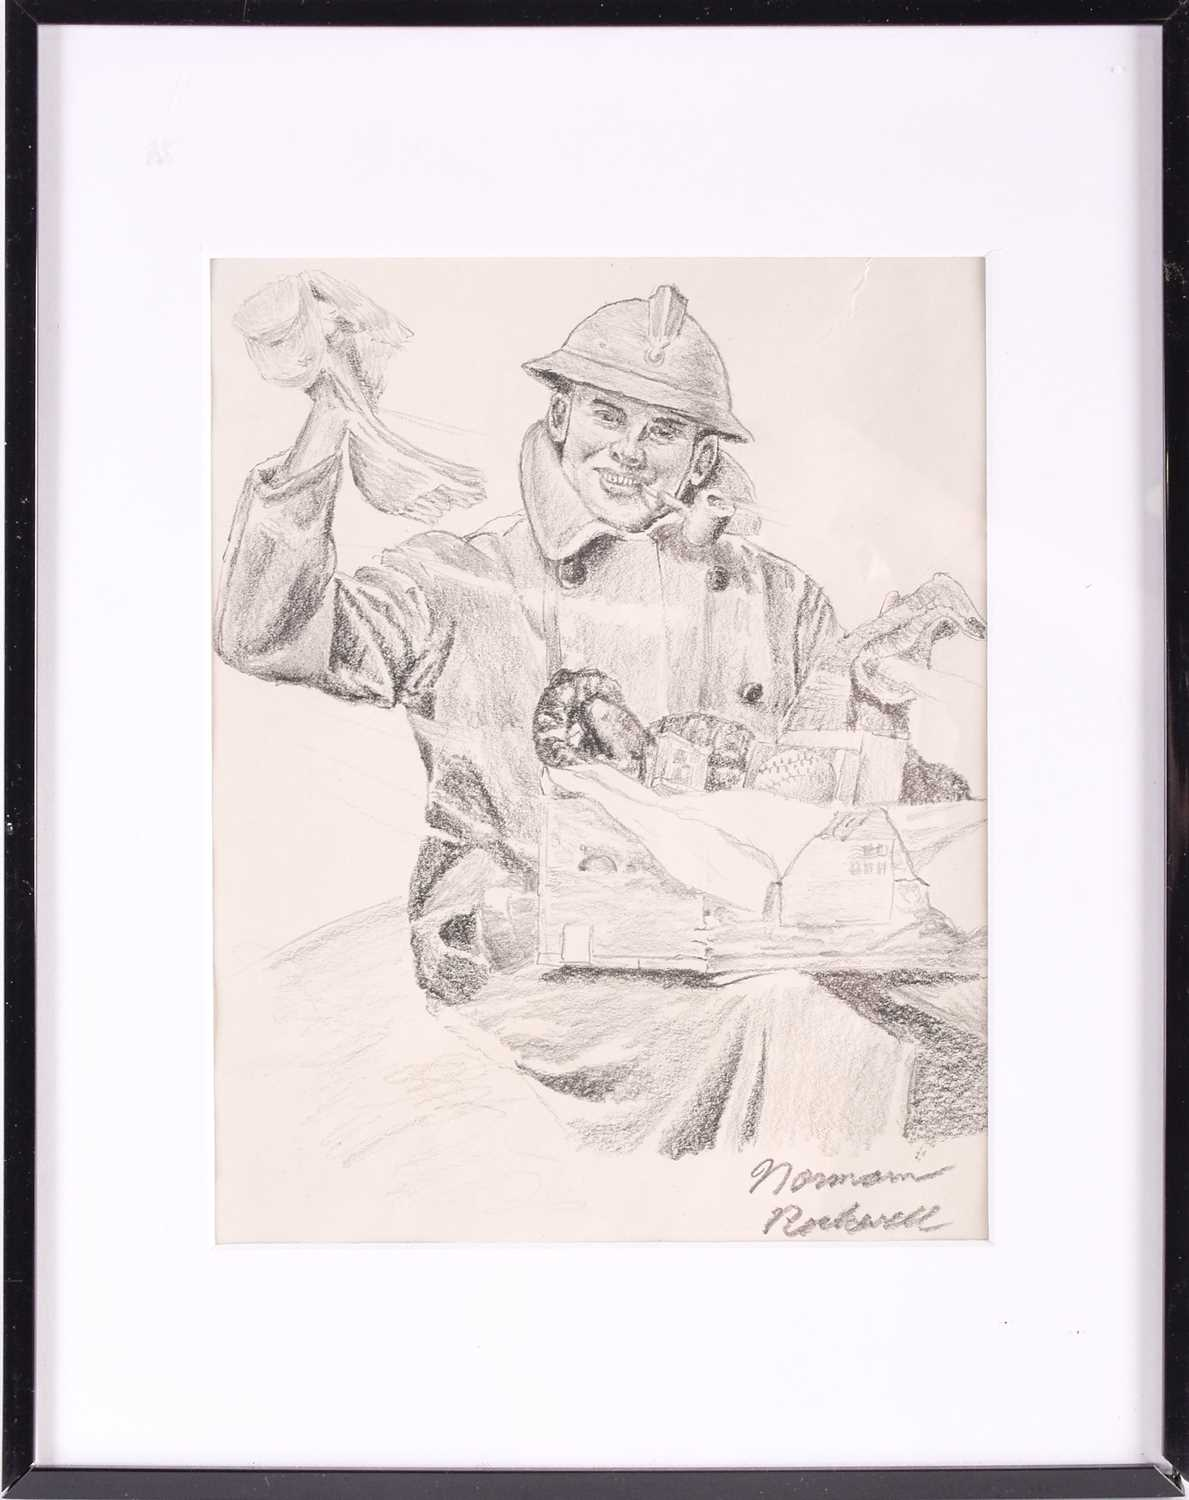 Norman Rockwell pencil drawing on paper